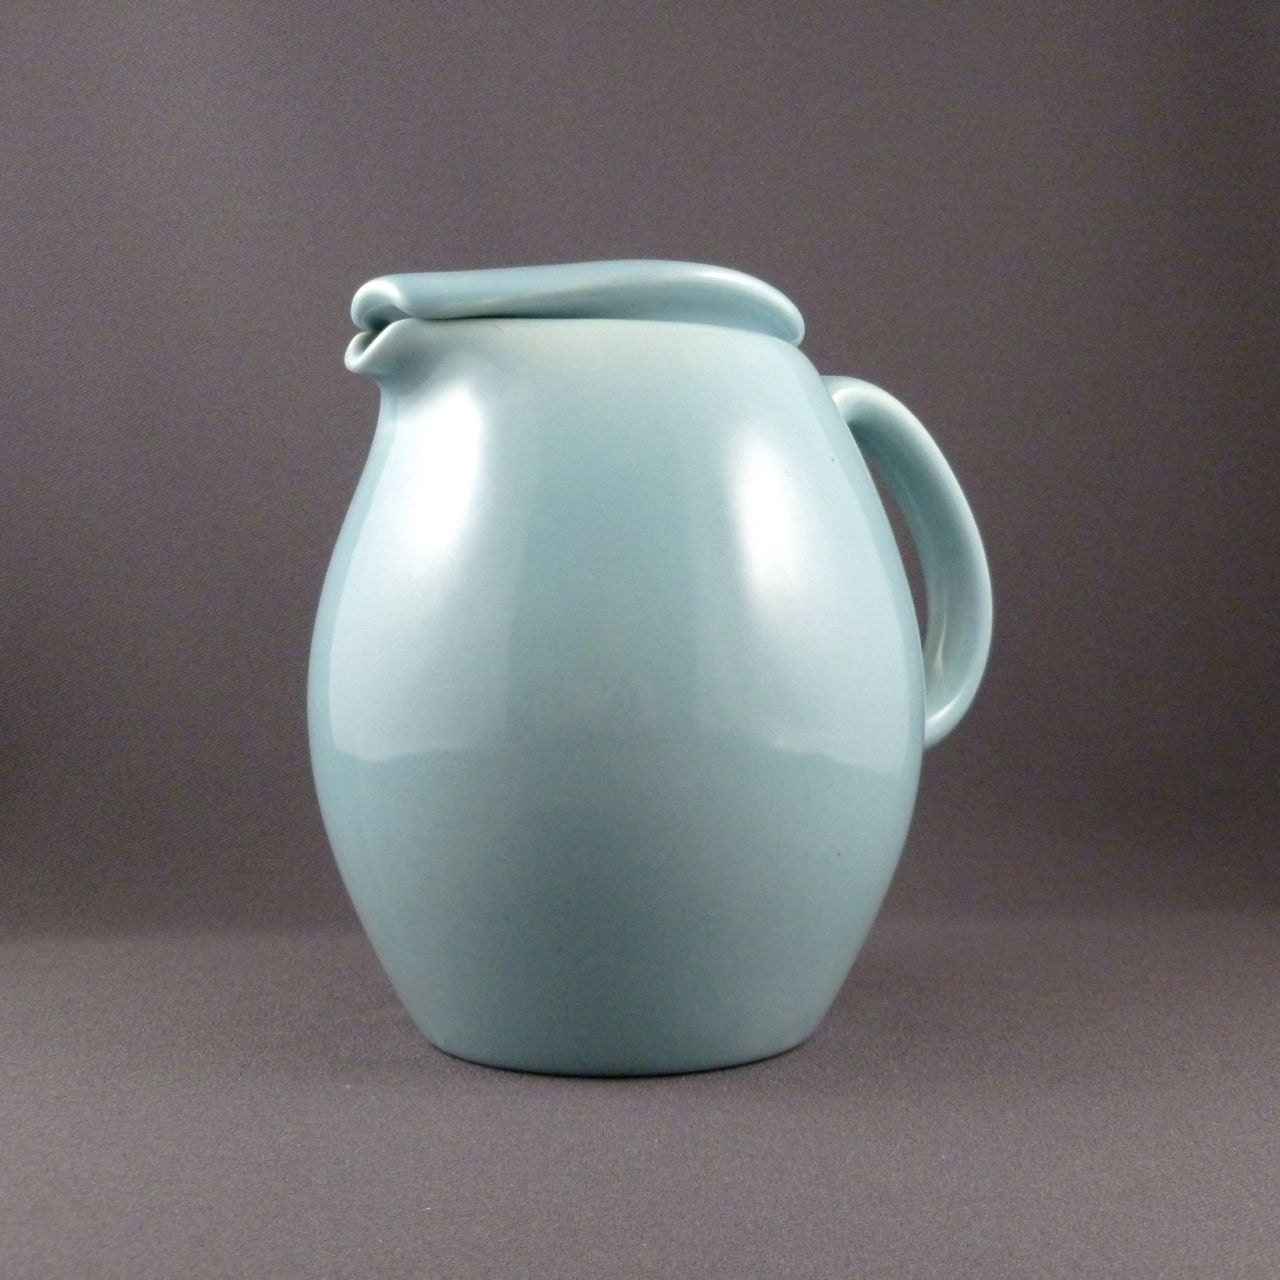 Russel wright iroquois casual covered pitcher in ice blue - Russel wright pitcher ...